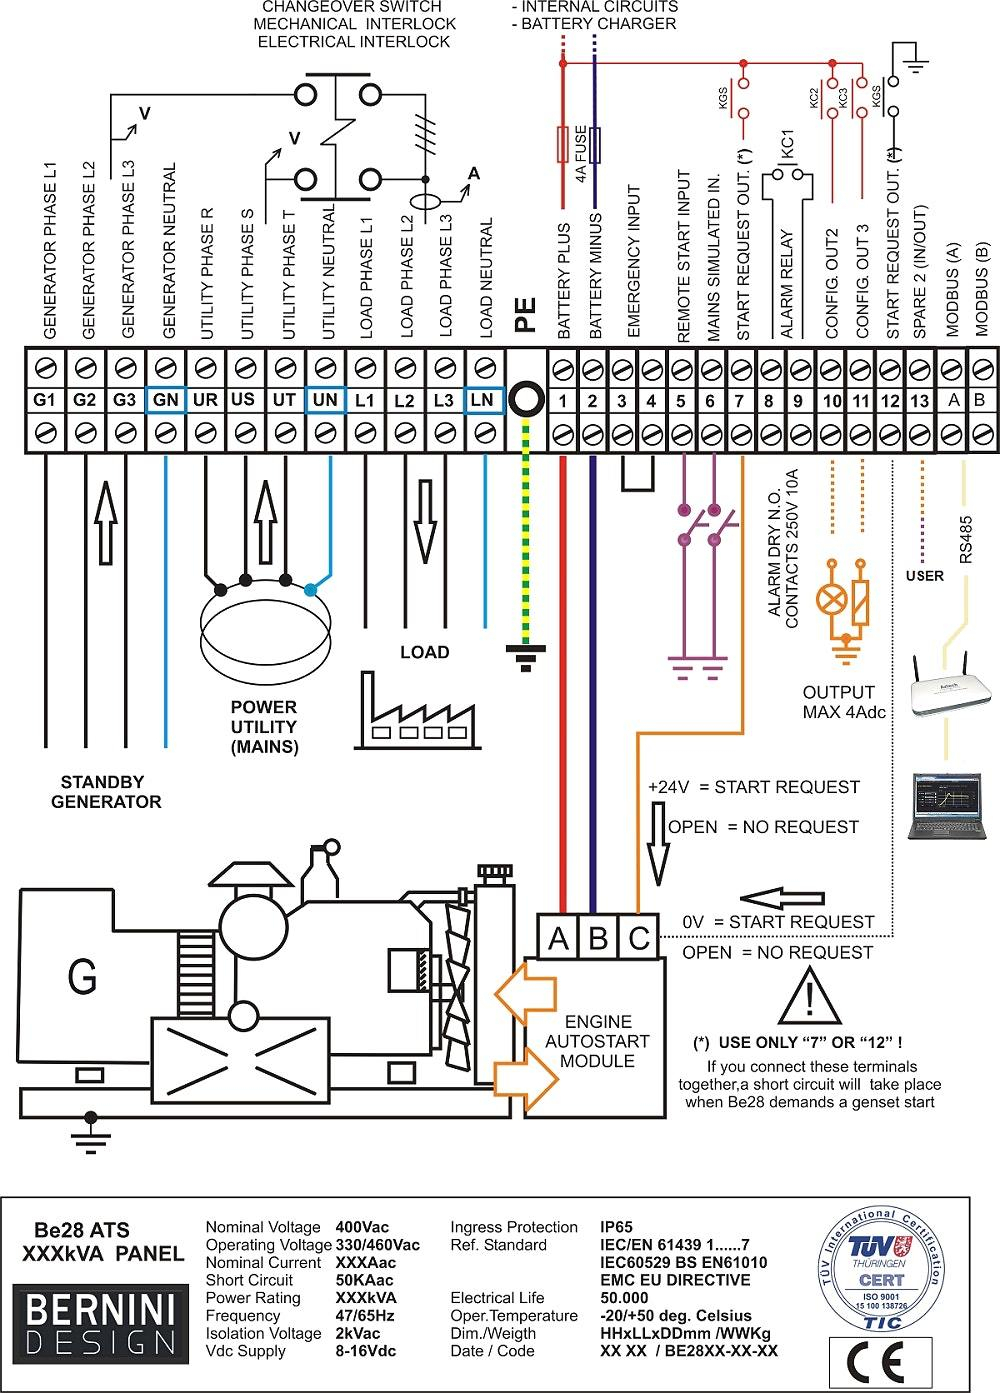 asco transfer switch wiring diagram collection. Black Bedroom Furniture Sets. Home Design Ideas